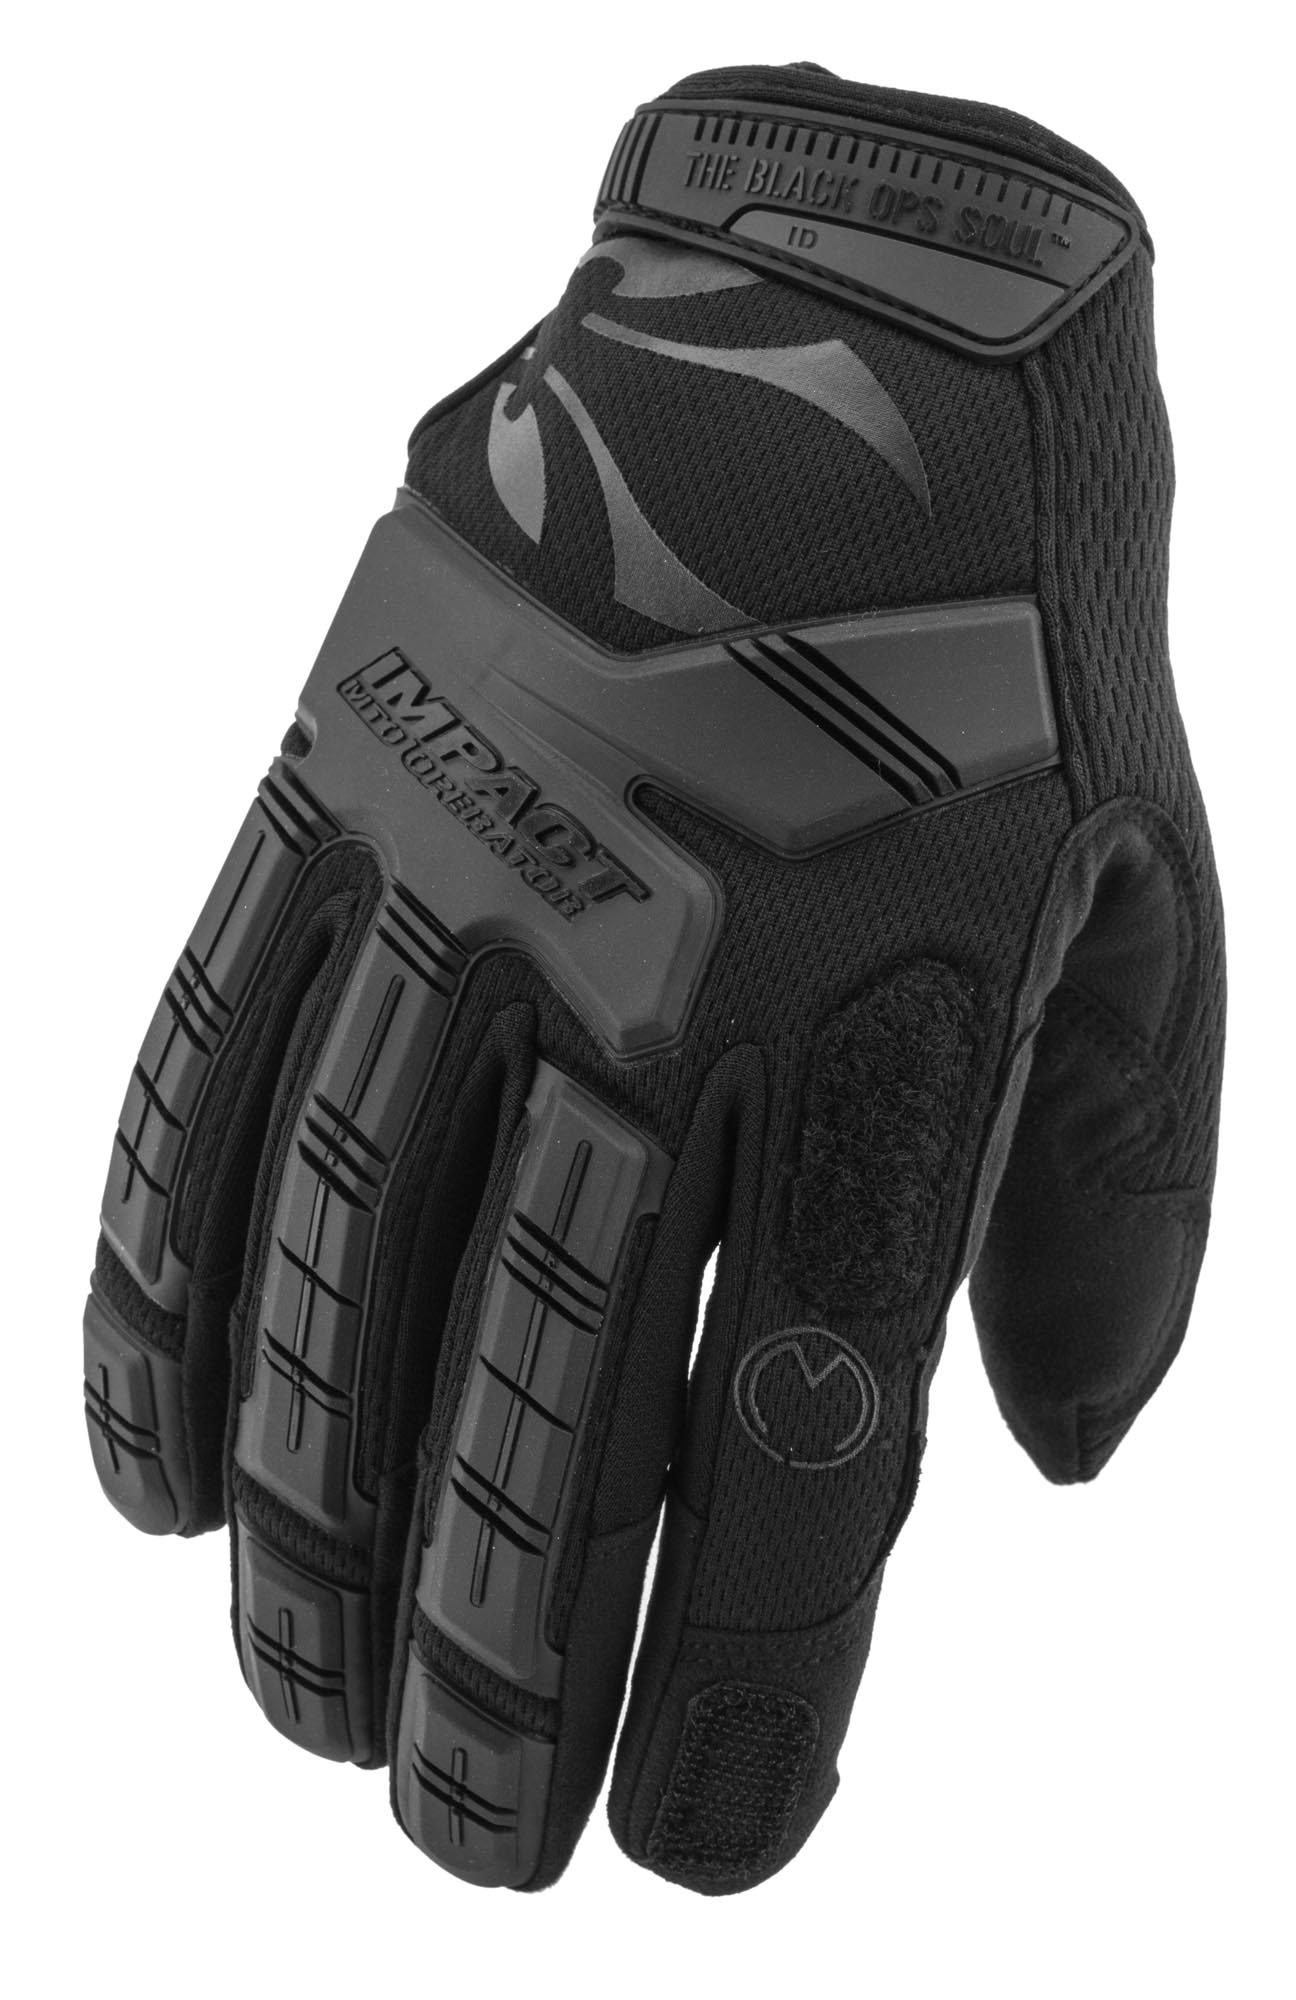 Photo Gants - MTO OPERATOR by Mechanix - Covert - Taille/size L